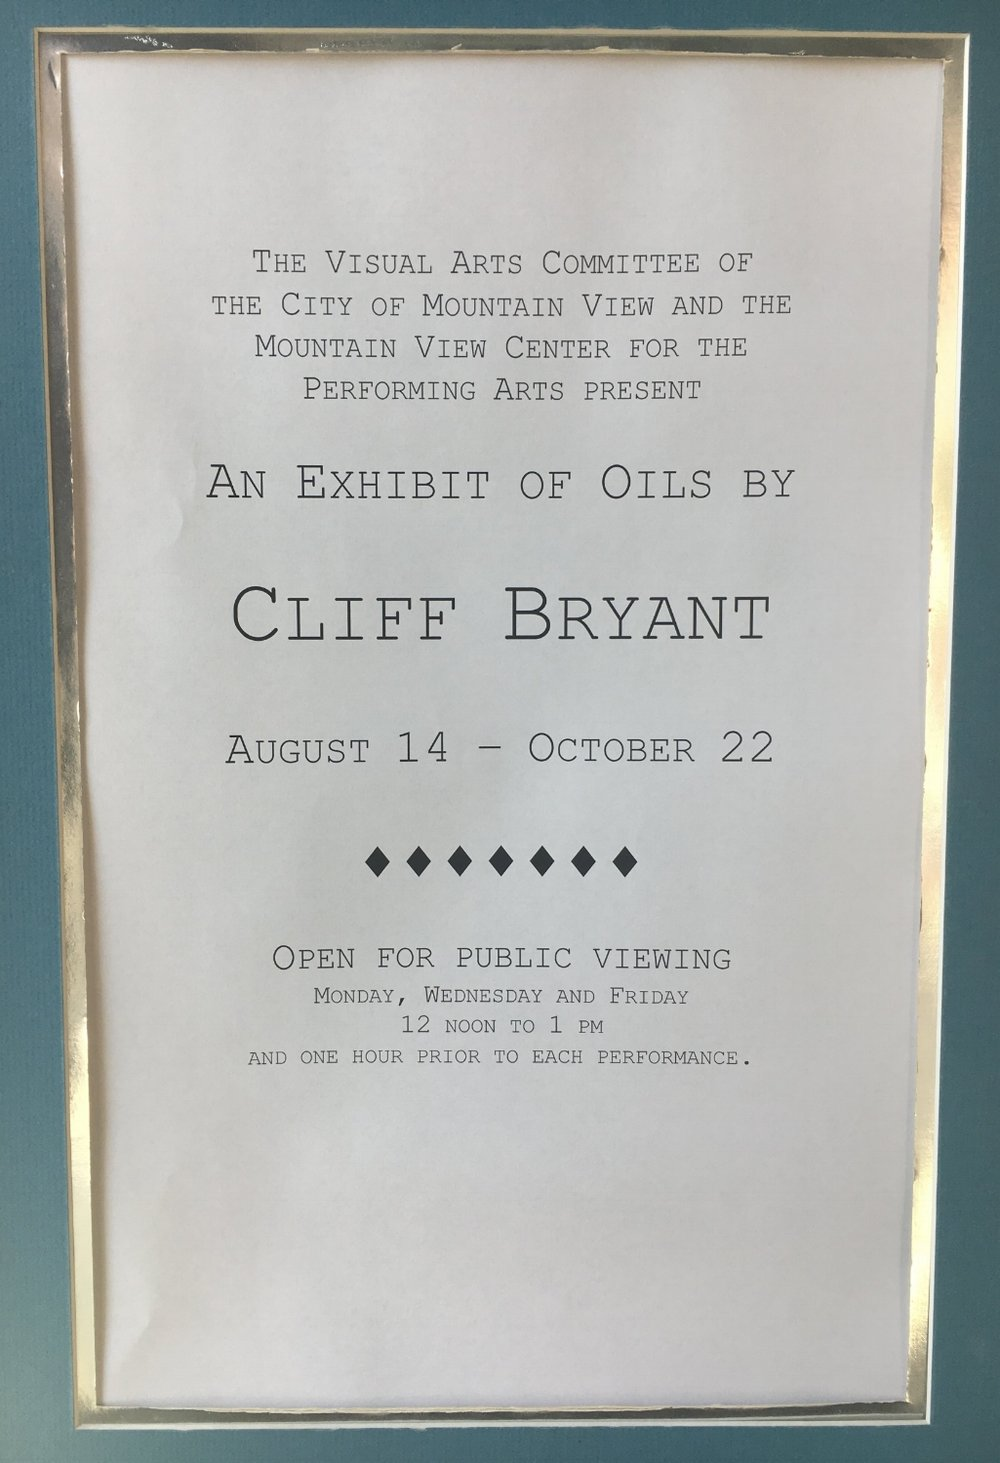 Sign for exhibition